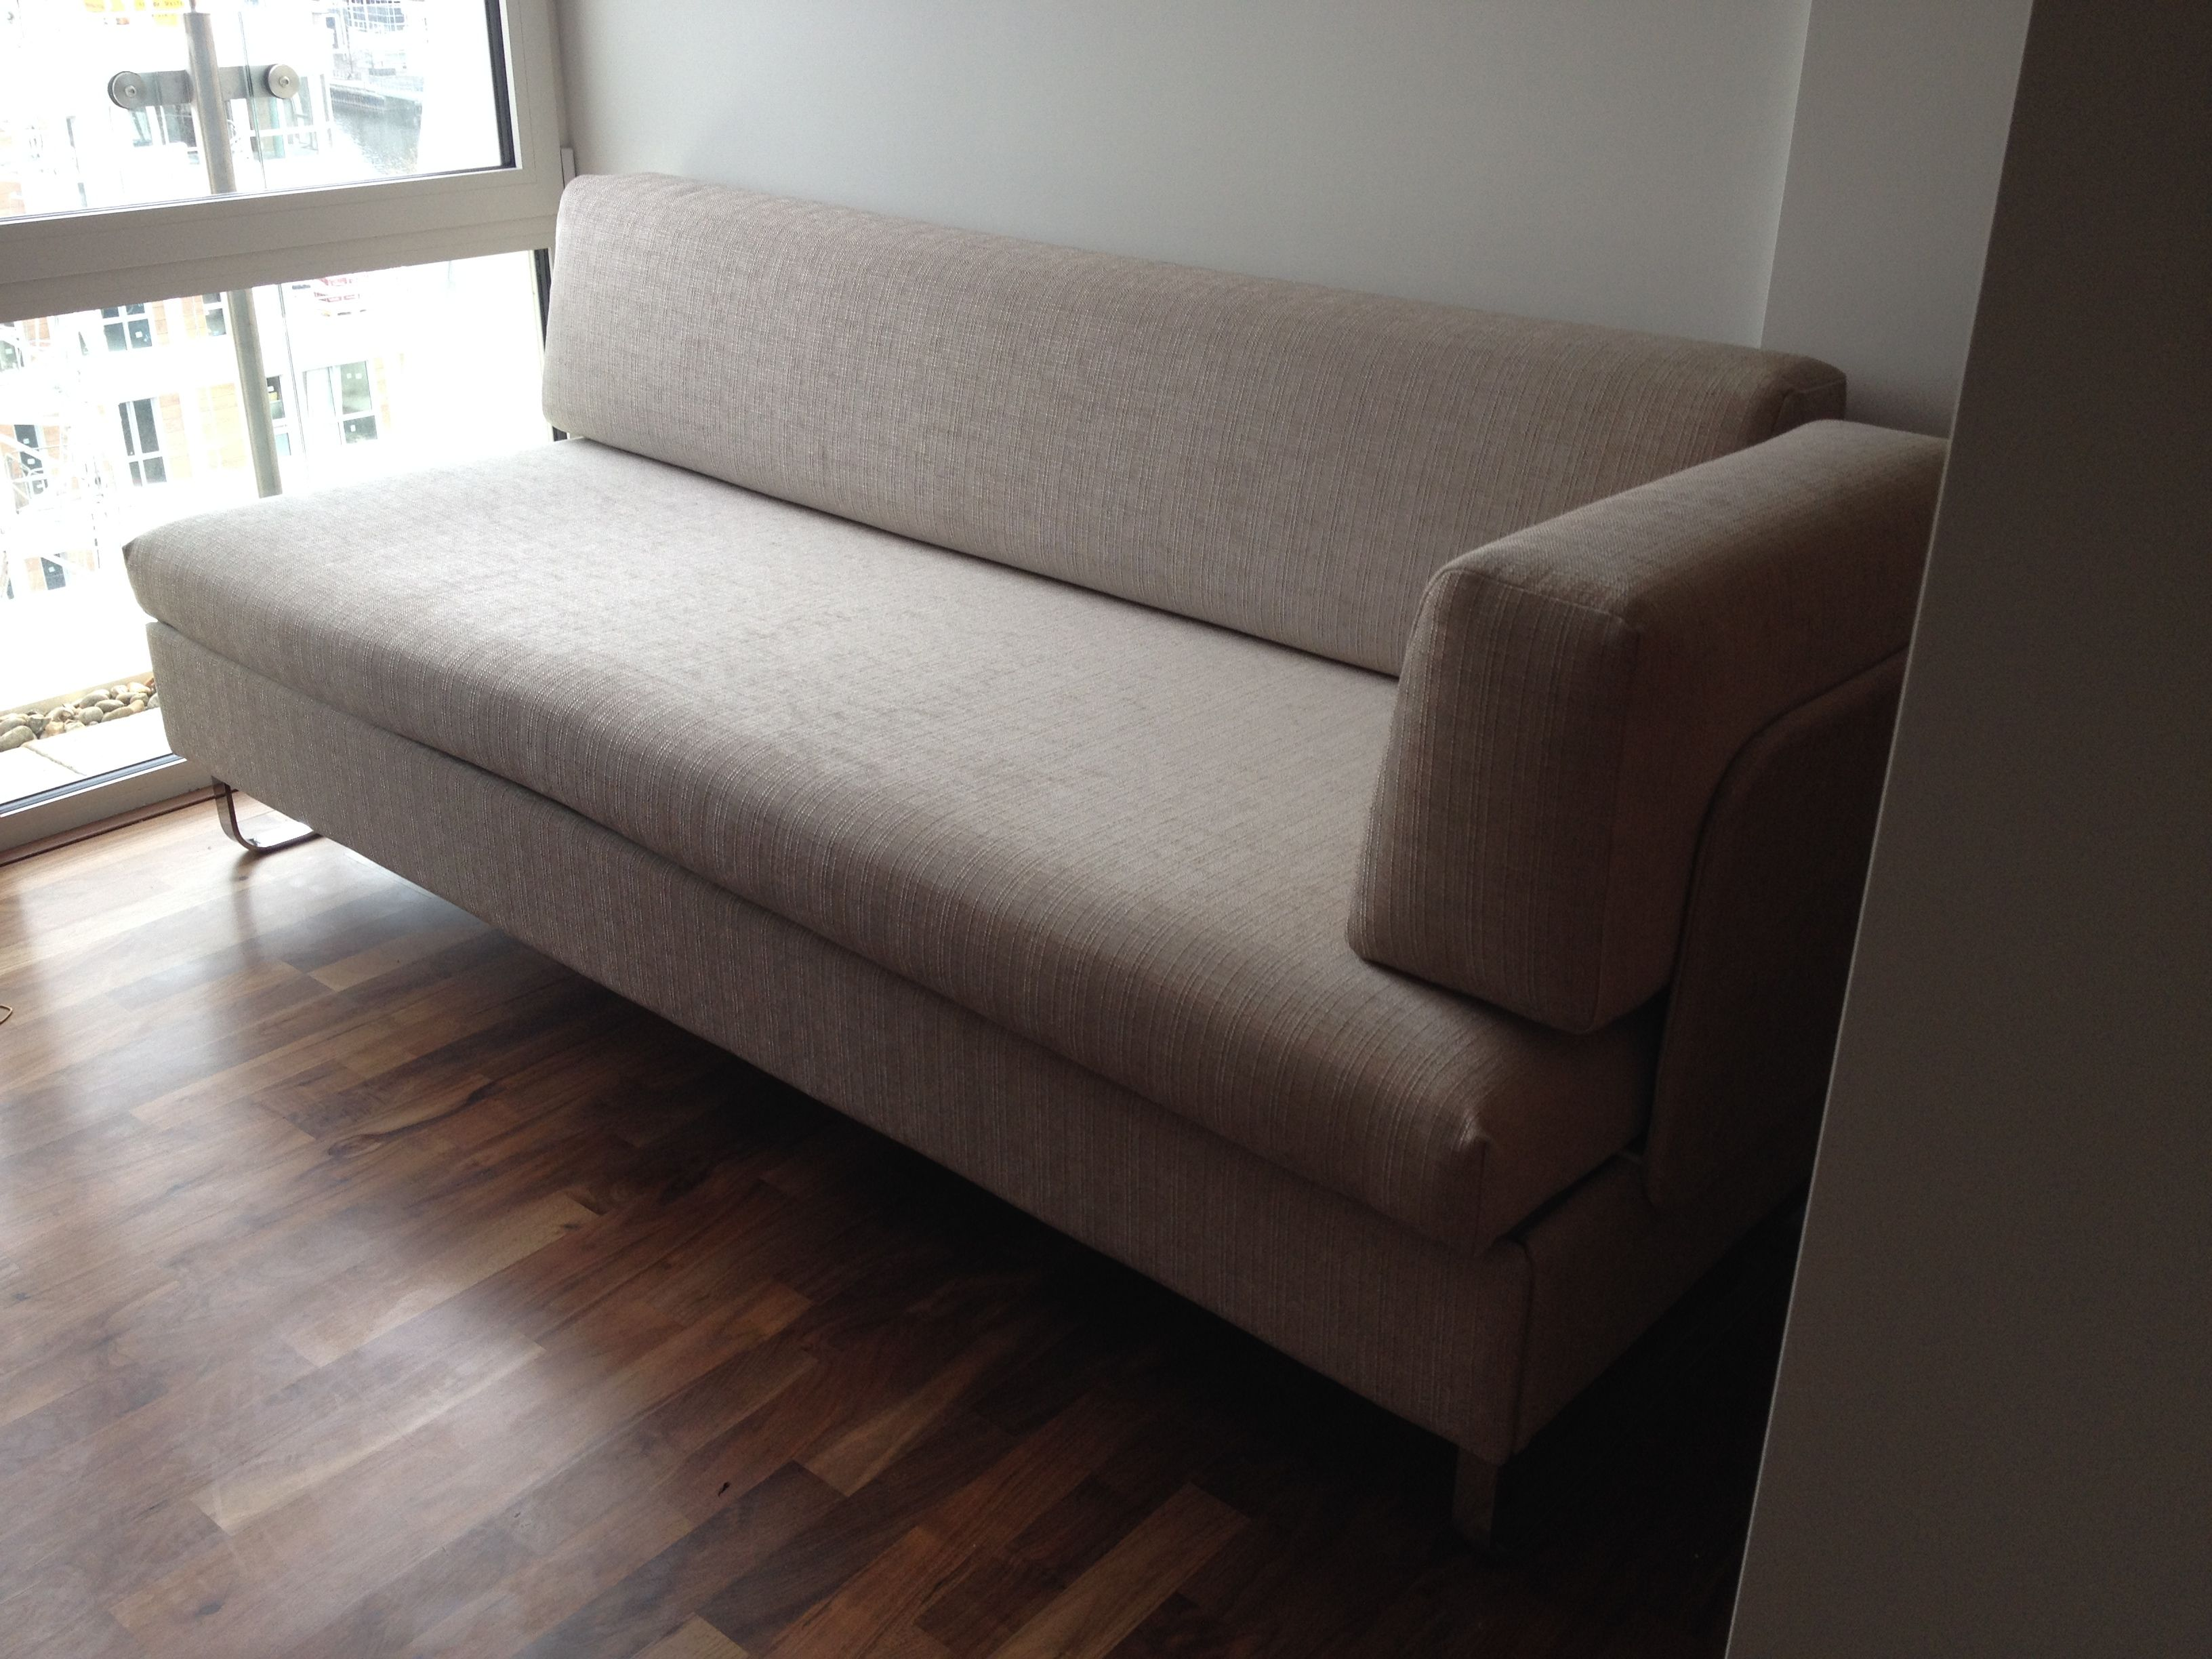 Contemporary Sofa With A Large Double Bed For All The